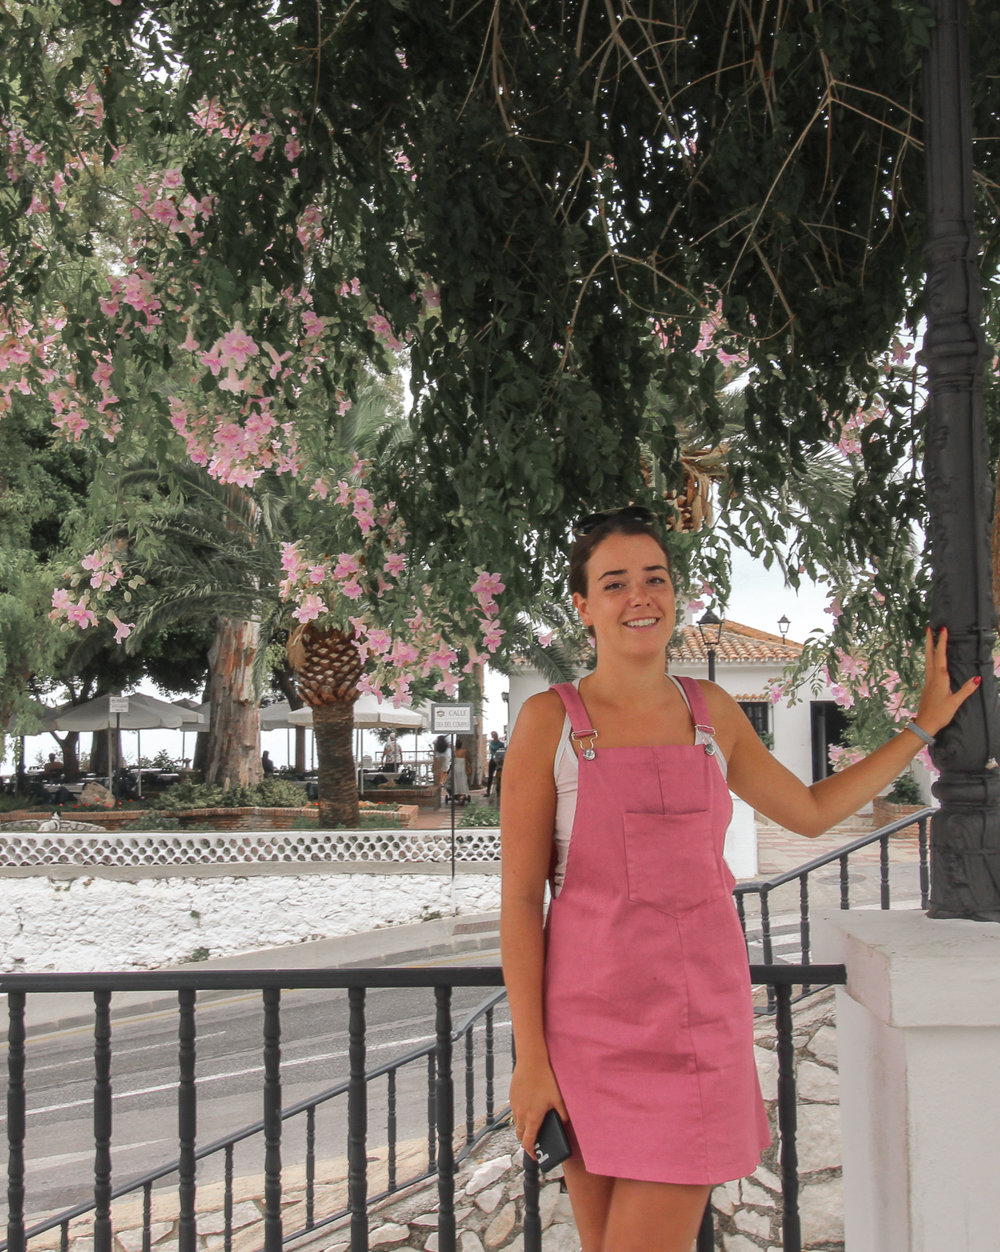 Markets - Bought this cute overall dress from a local market in Estepona, and wore it out in Mijas! The market had anything you could ever want.